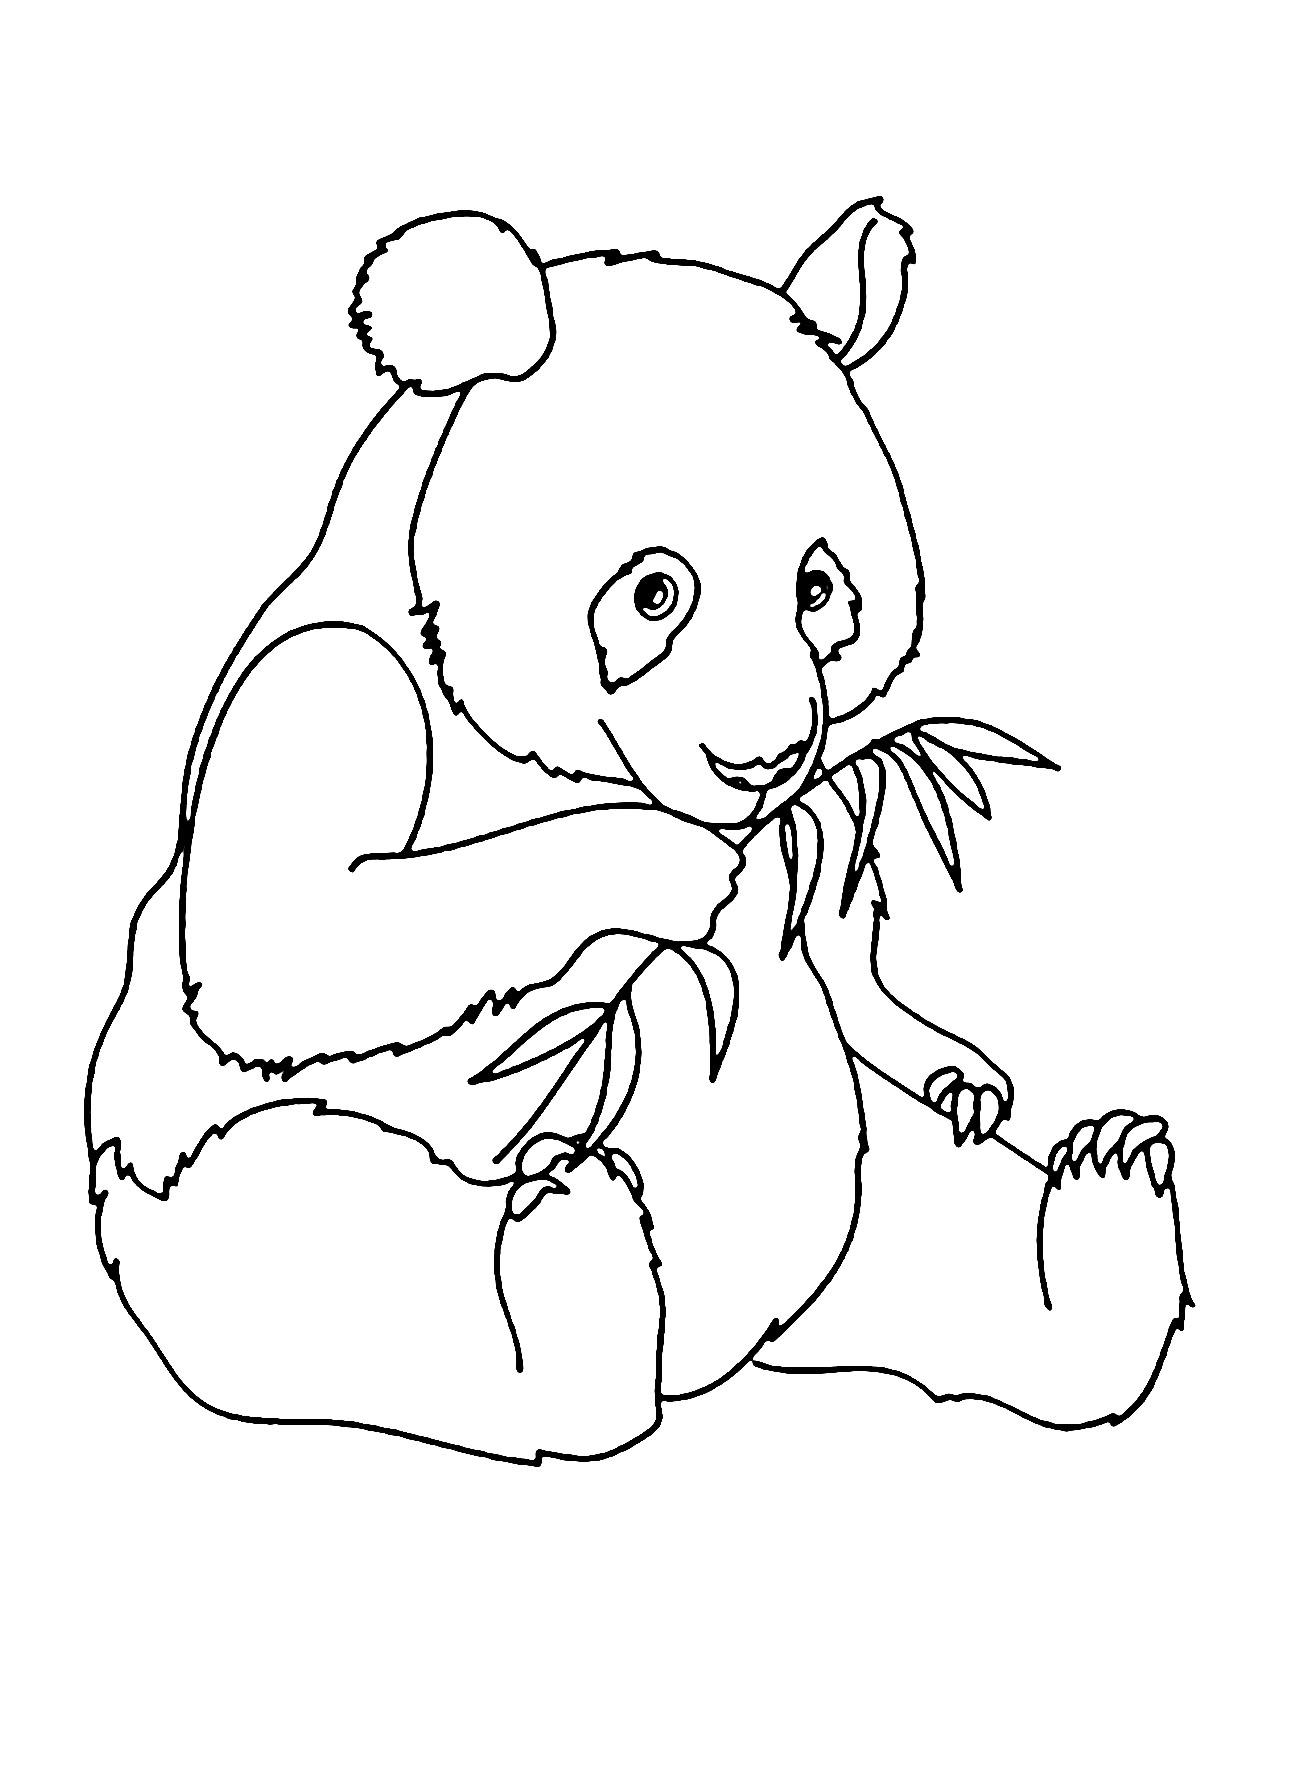 Pandas to download - Pandas Kids Coloring Pages